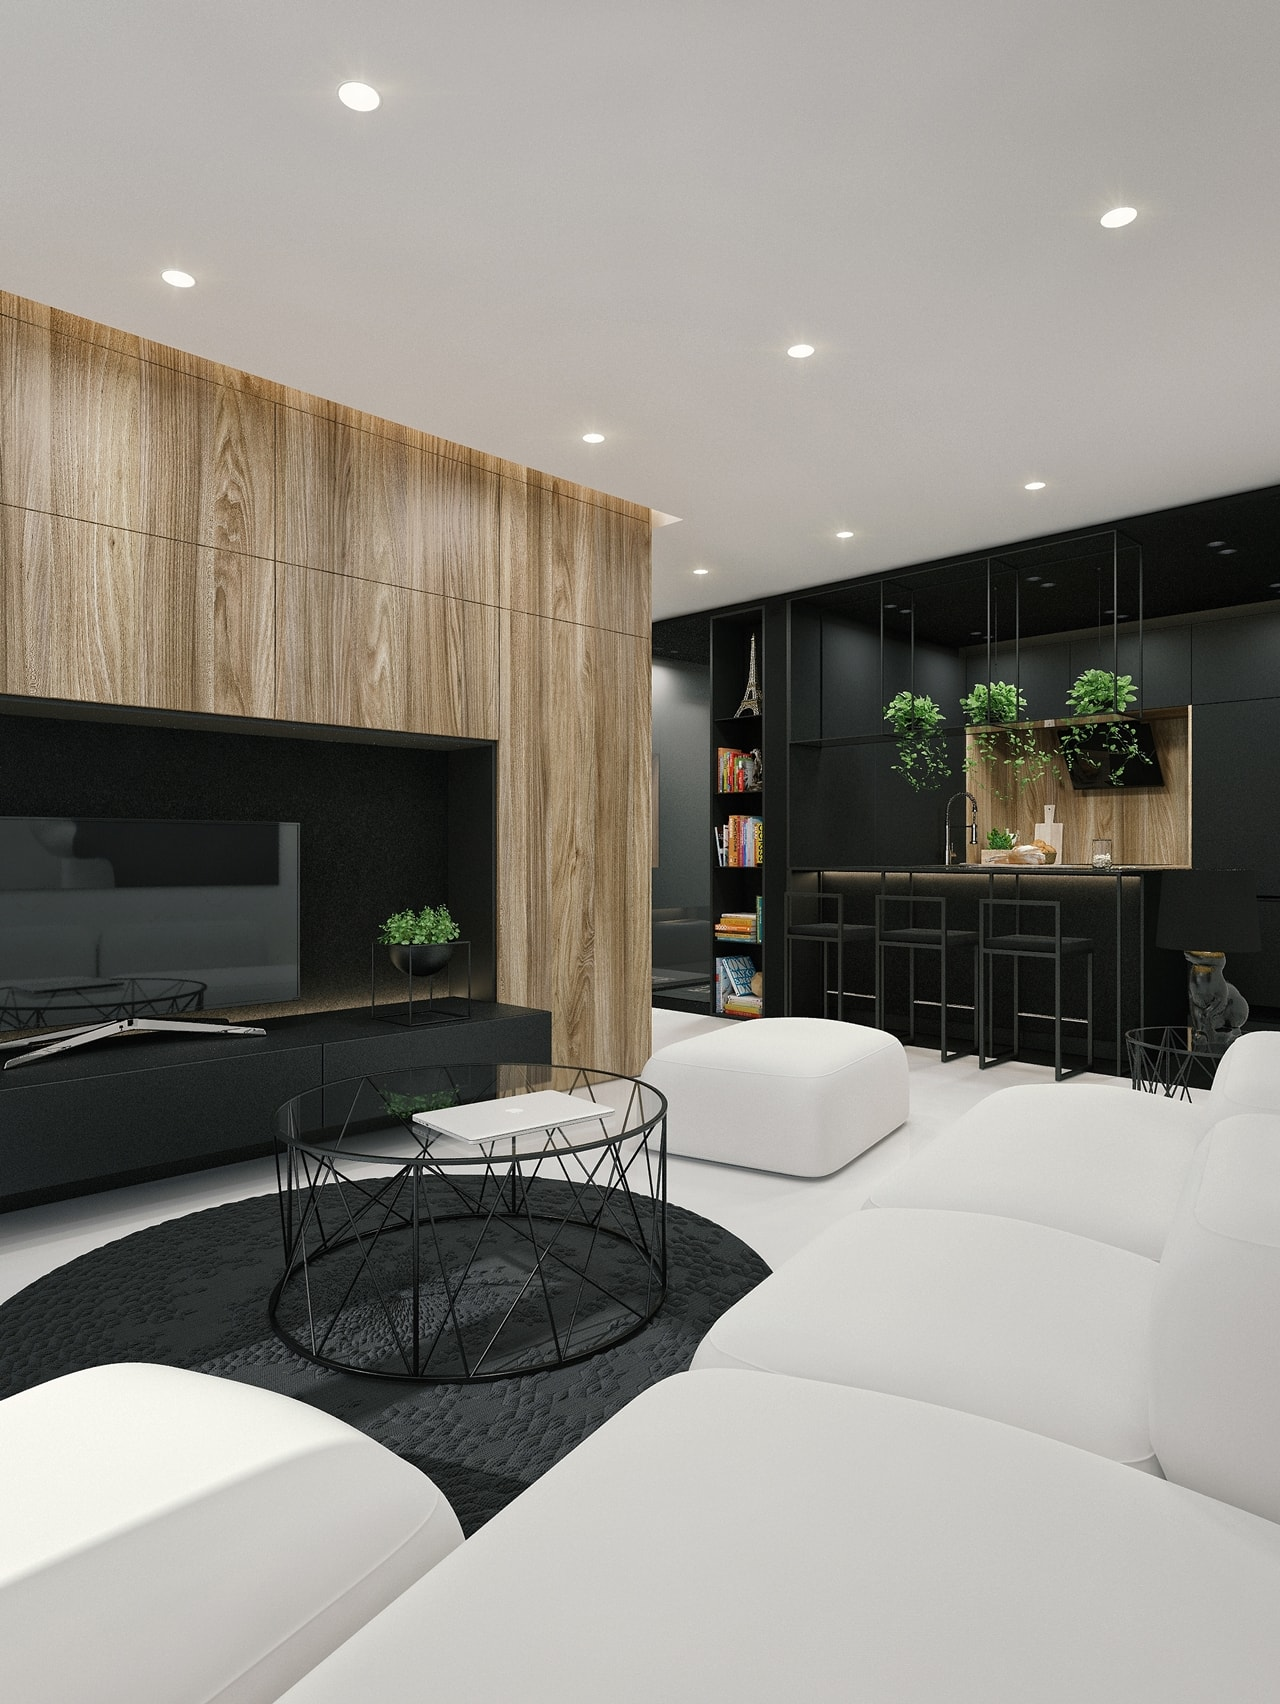 Living Room Interior Design: Black And White Interior Design Ideas: Modern Apartment By